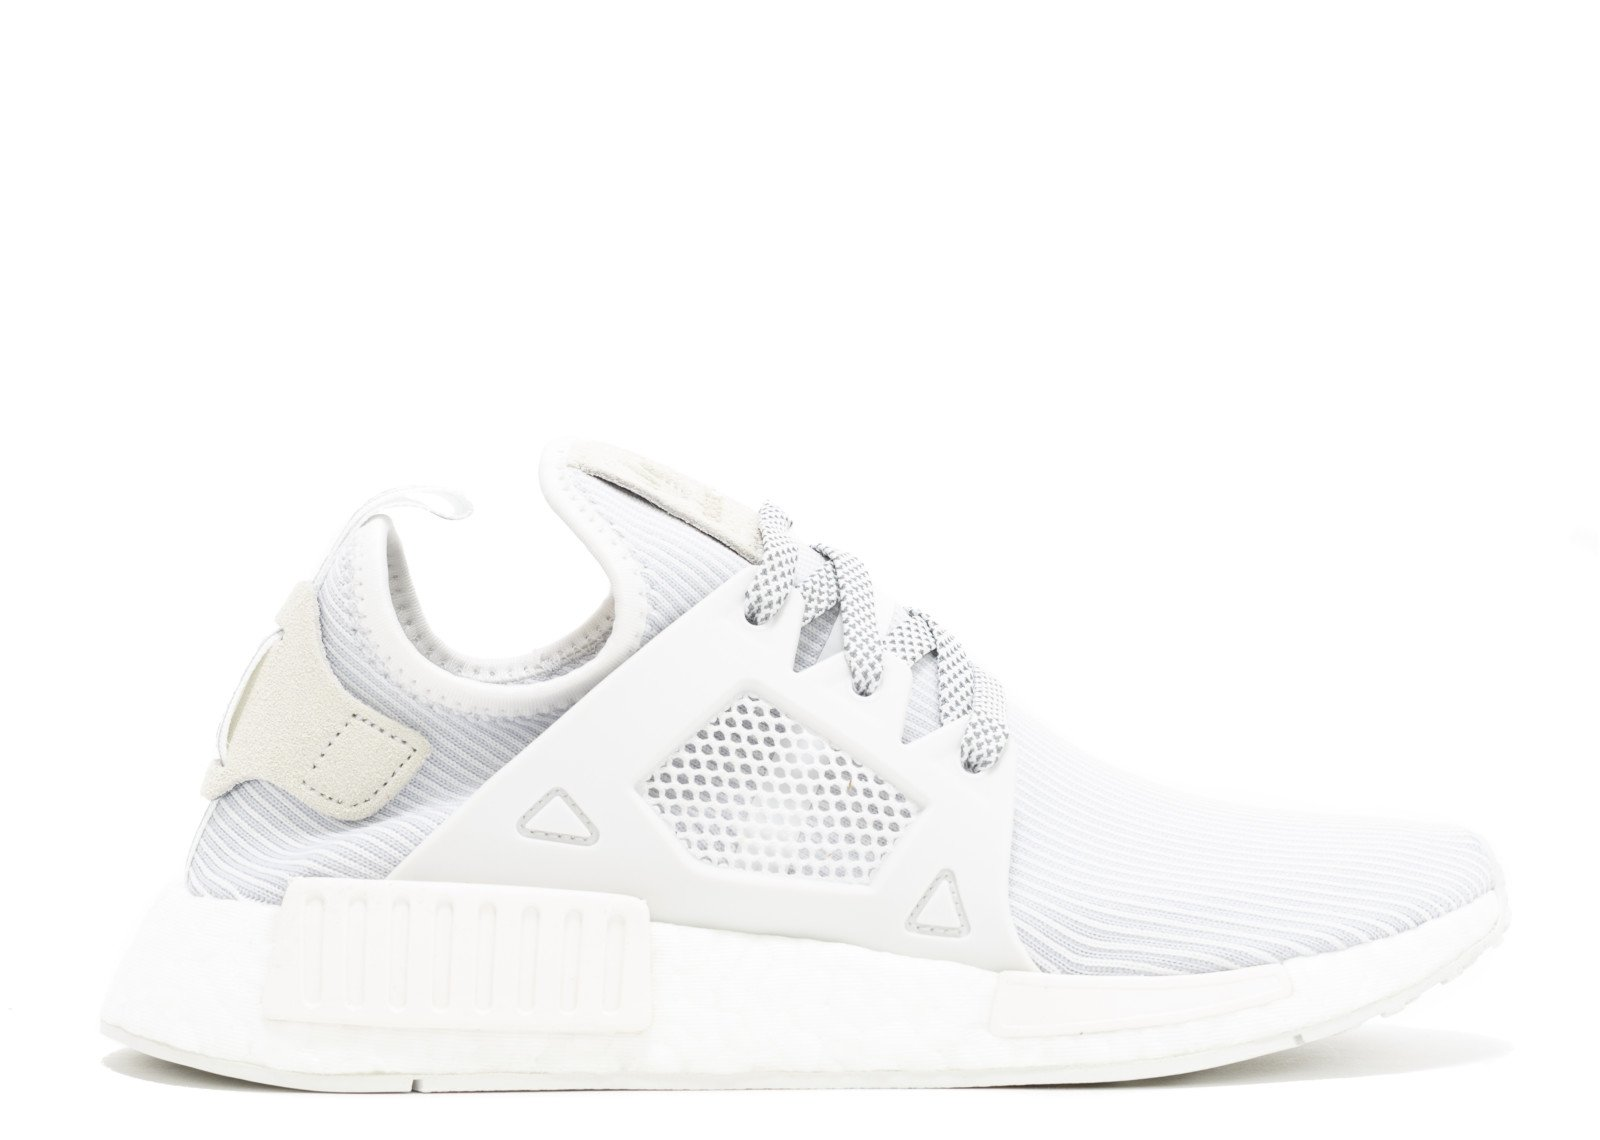 078bc5dbbd677 Amazon.com  adidas NMD XR1 PK W  Triple White  - BB3684 - Size 7.5 ...